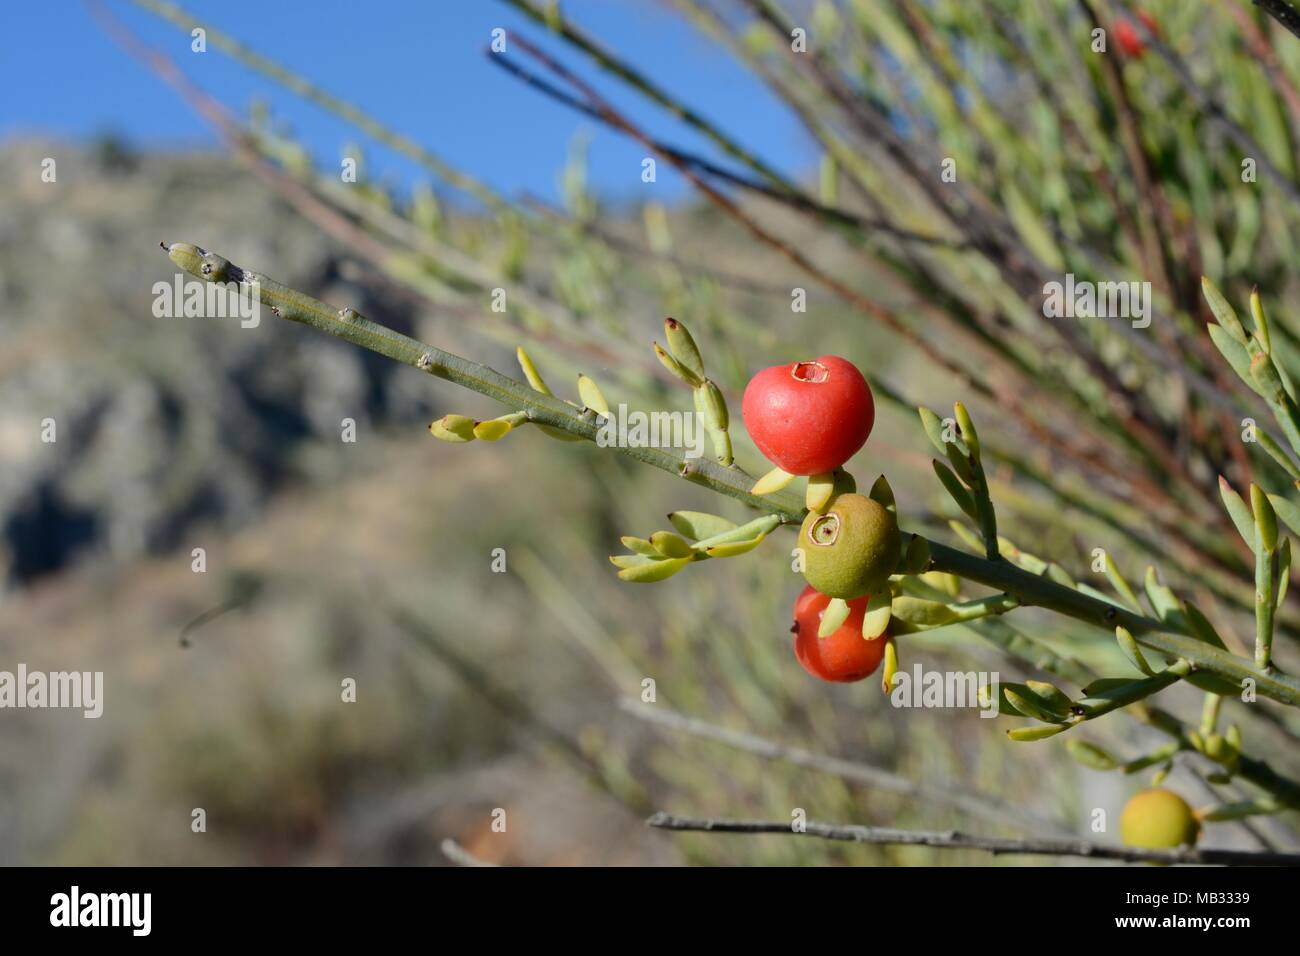 Poet's cassia / Osyris (Osyris alba) bush, a plant in the mistletoe family semi-parasitic on the roots of other species, with red berries, Greece. - Stock Image